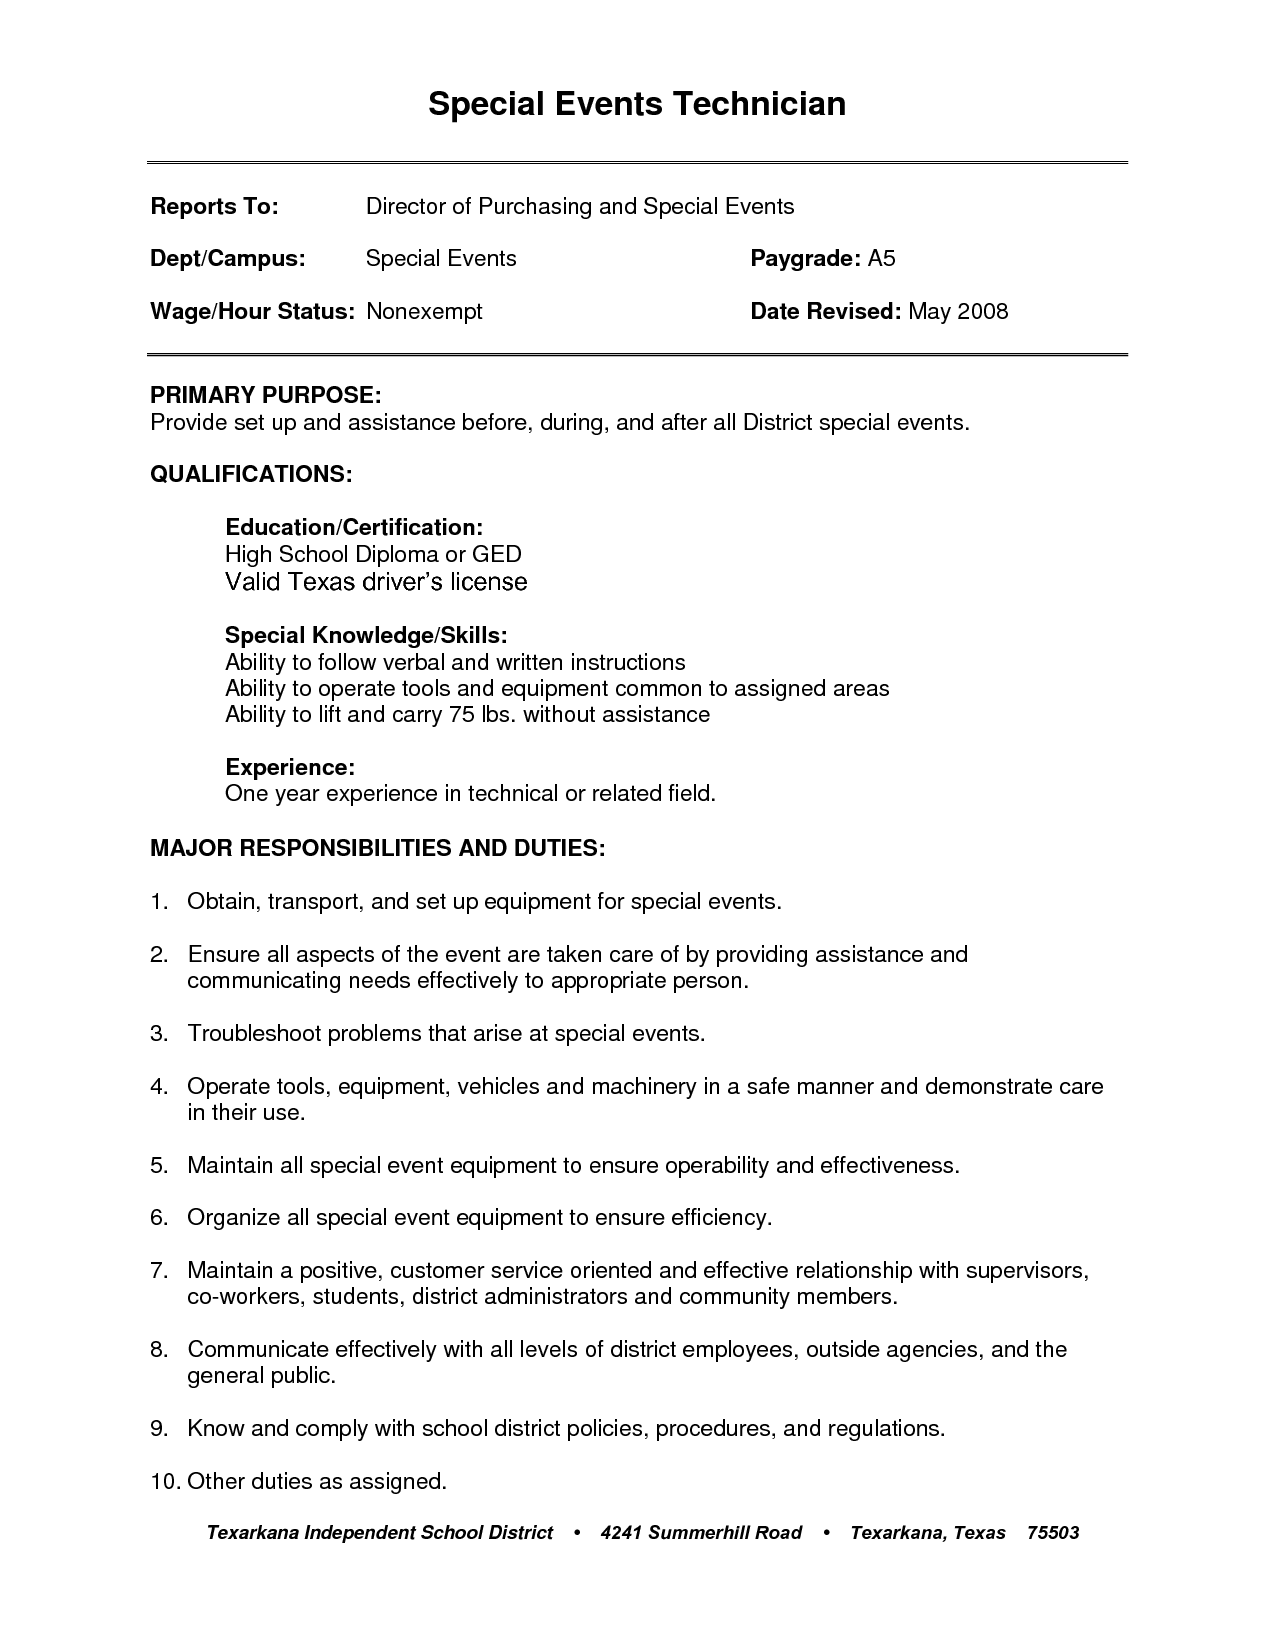 Marvelous Resume For General Job Teen Objective Cover Skills Labor And Template And General Skills For Resume